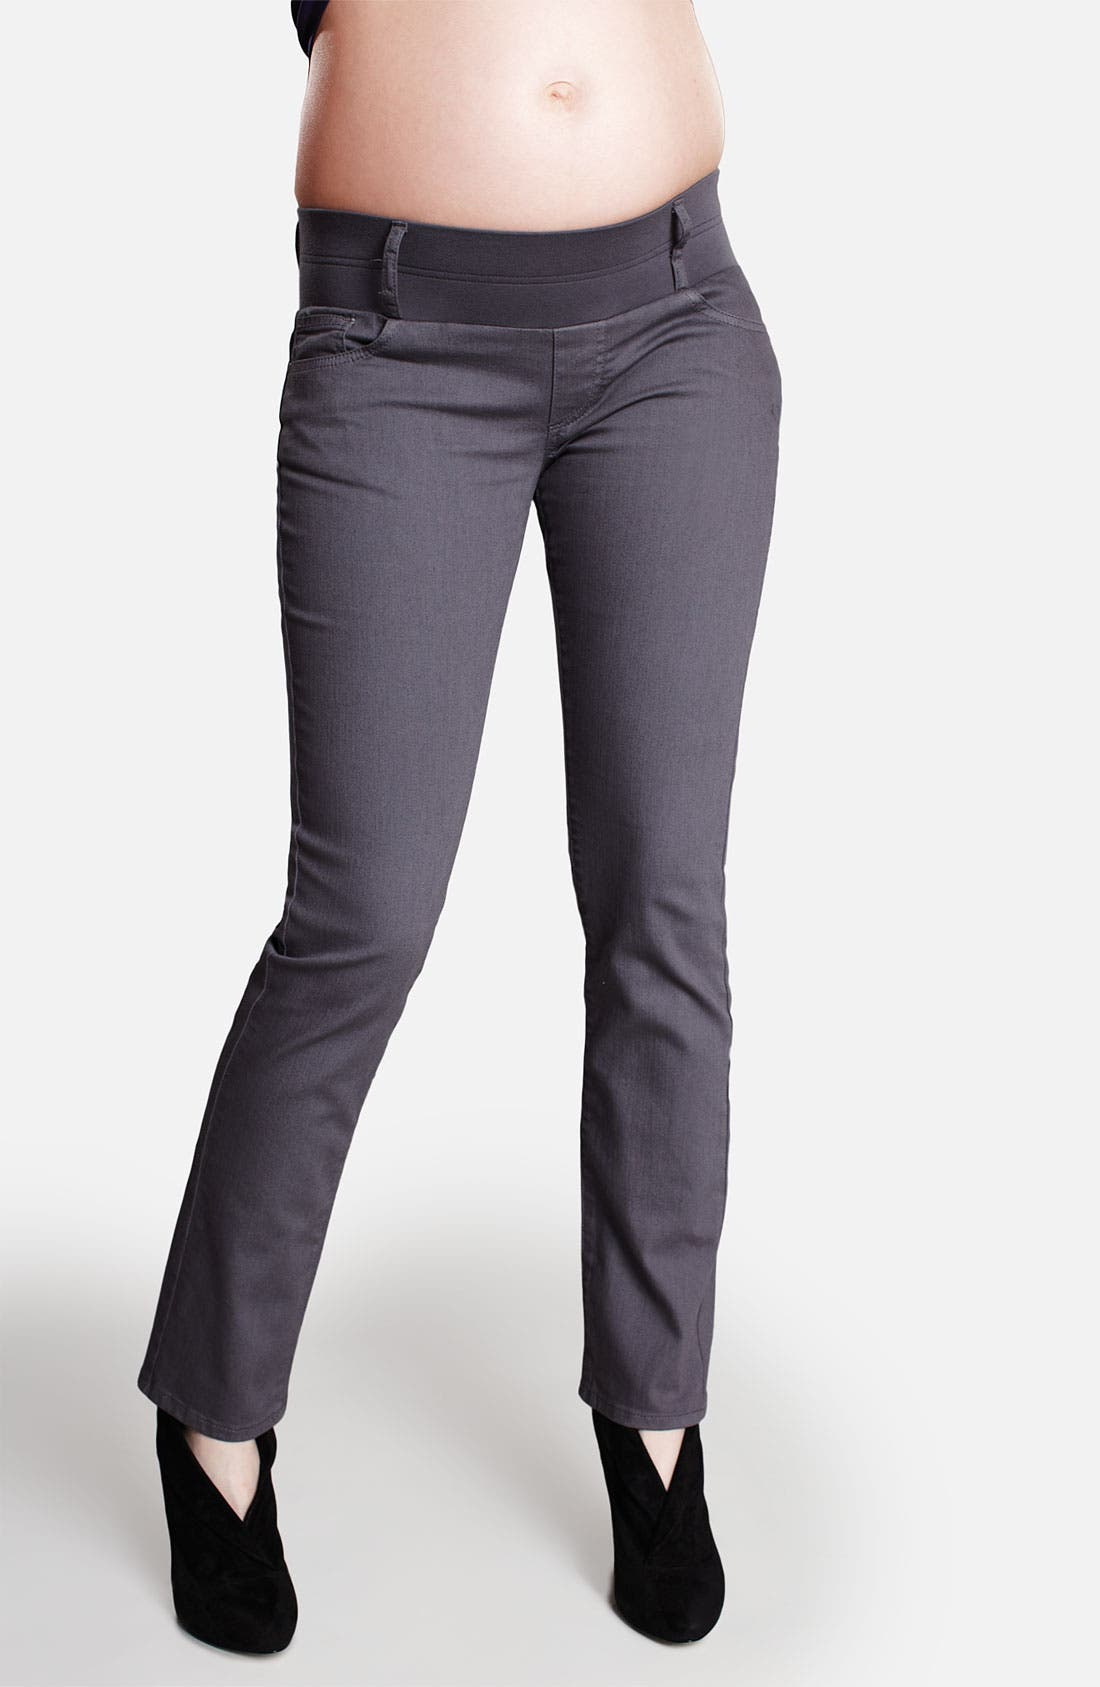 Alternate Image 1 Selected - Maternal America Maternity Skinny Ankle Stretch Jeans